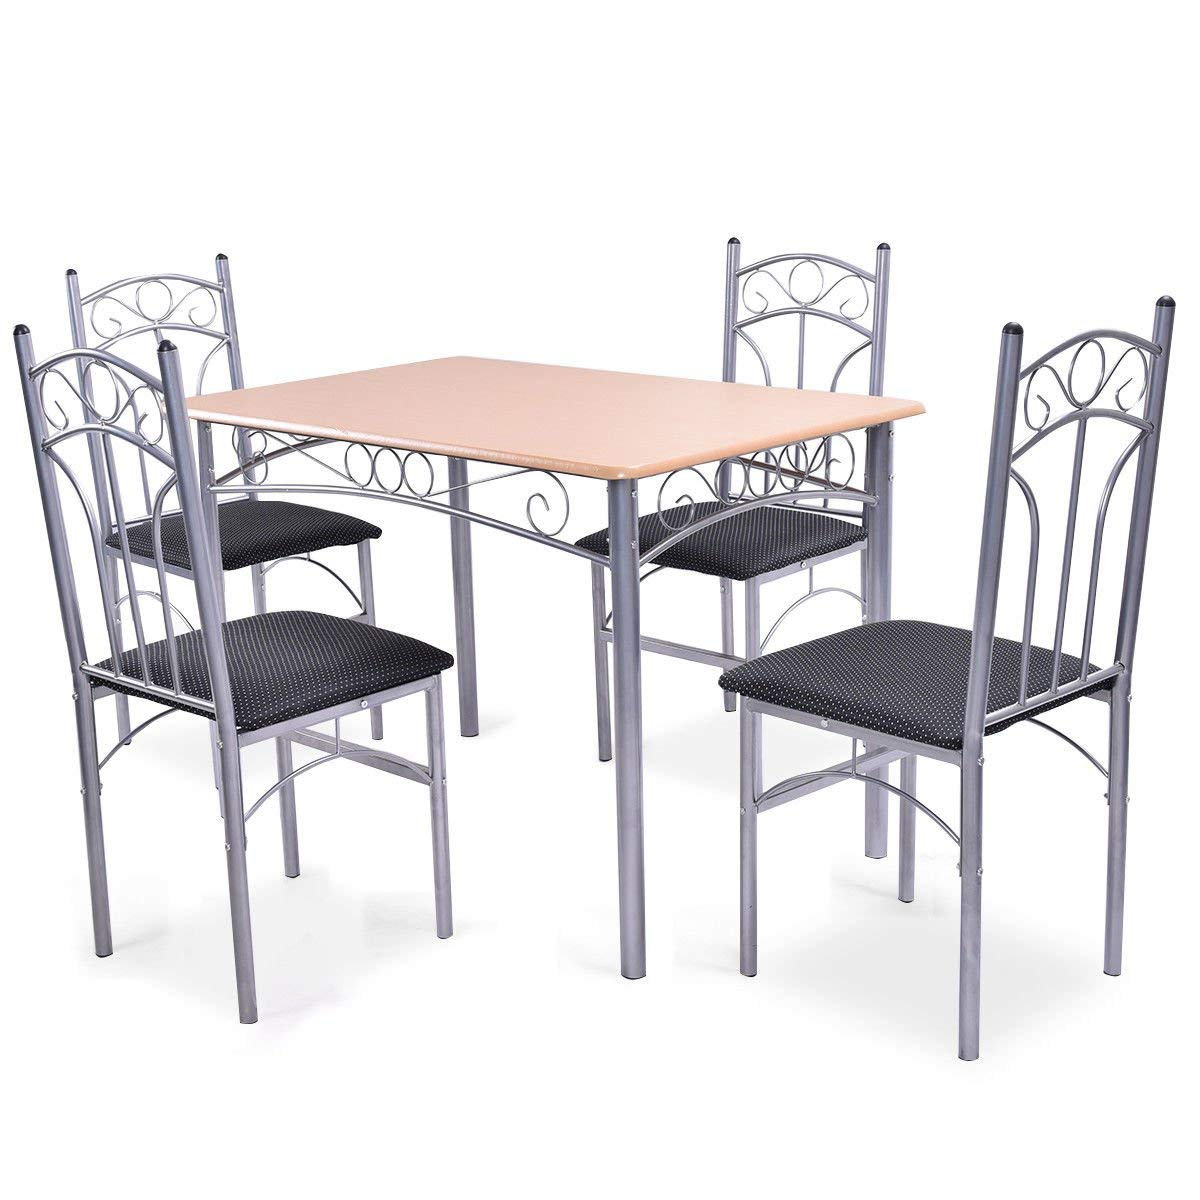 1 Table With 4Chairs Yopih Steel Frame Dining Set Table and Chairs Kitchen Modern Furniture Bistro Wood